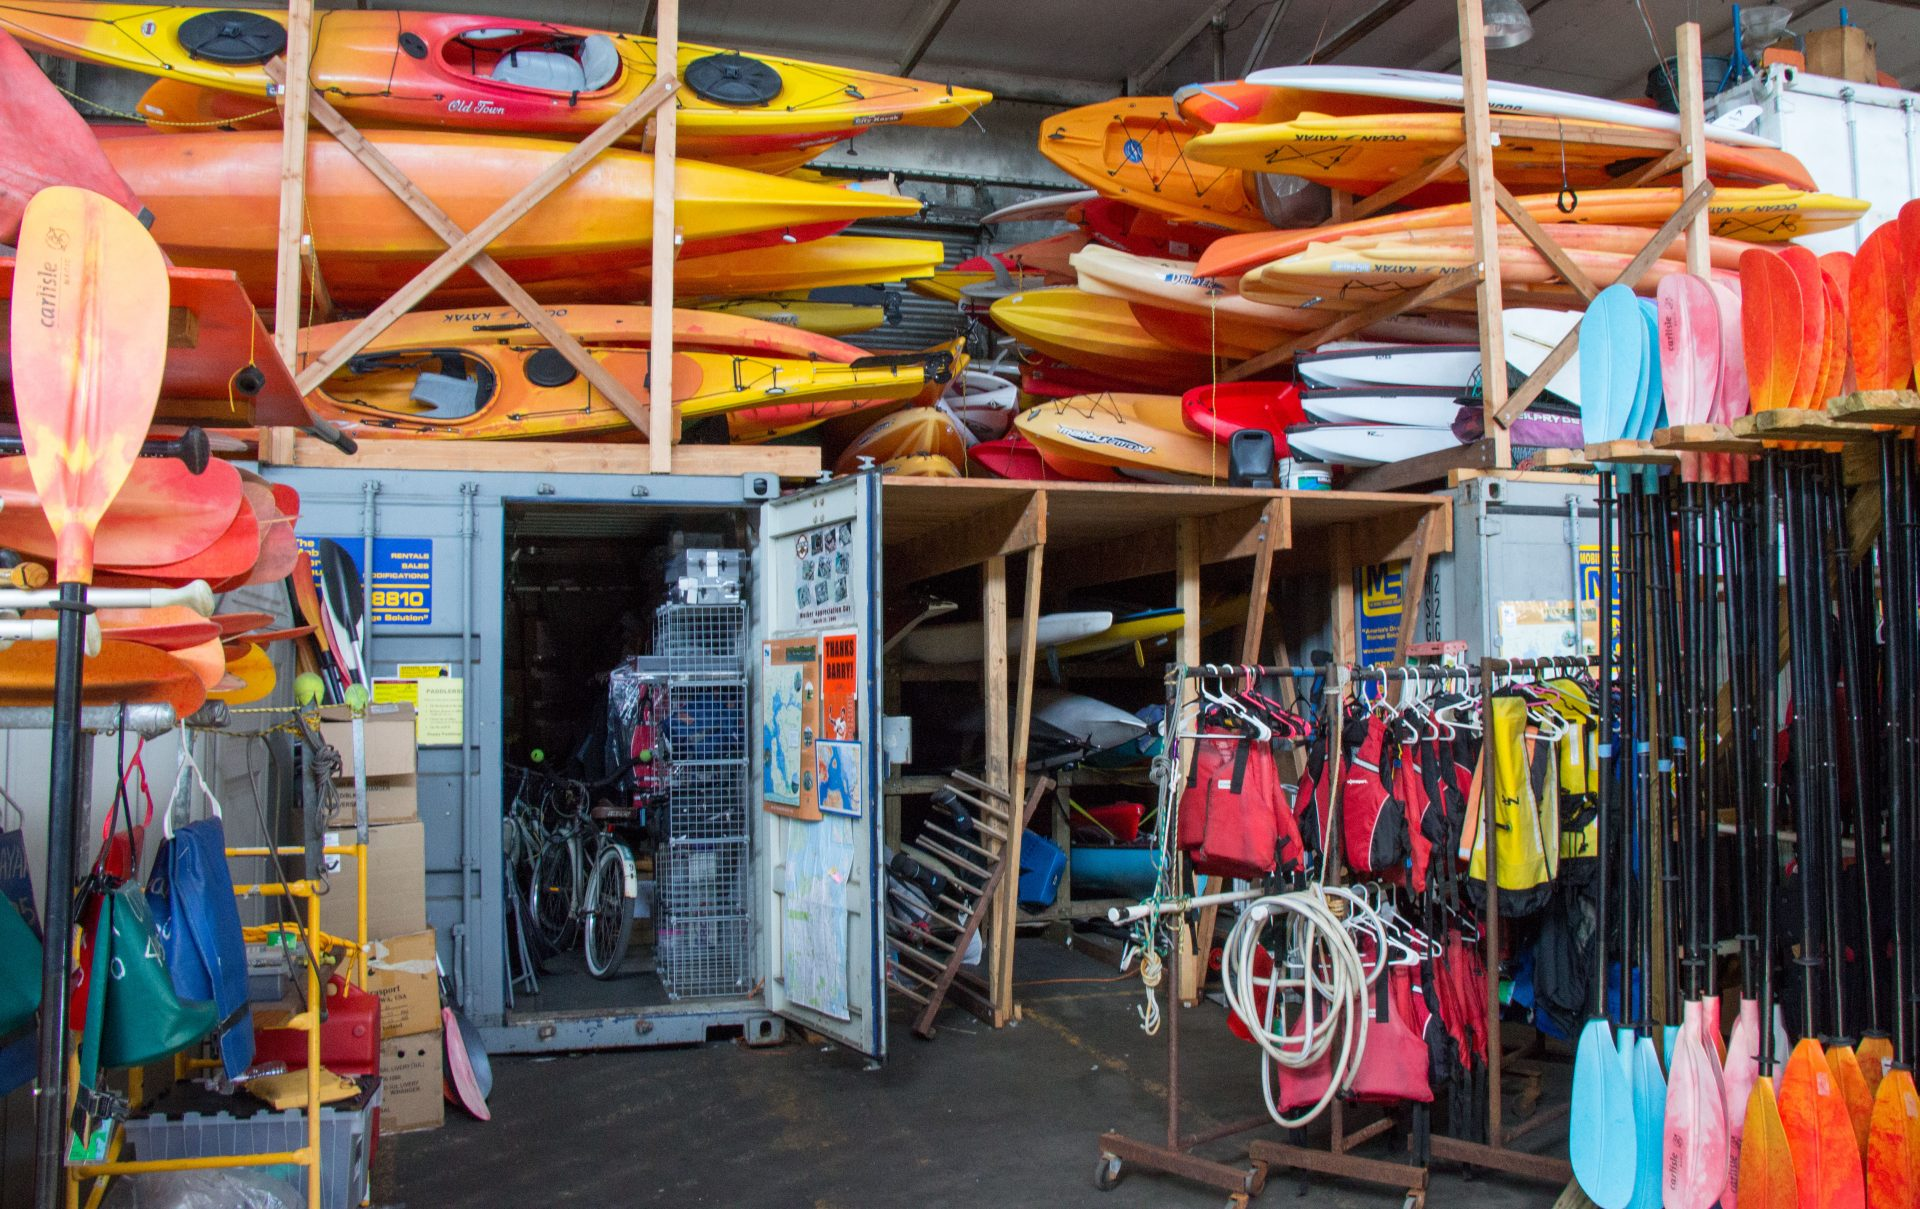 Shed very full of many orange kayaks, life jackets, paddles, and other equipement